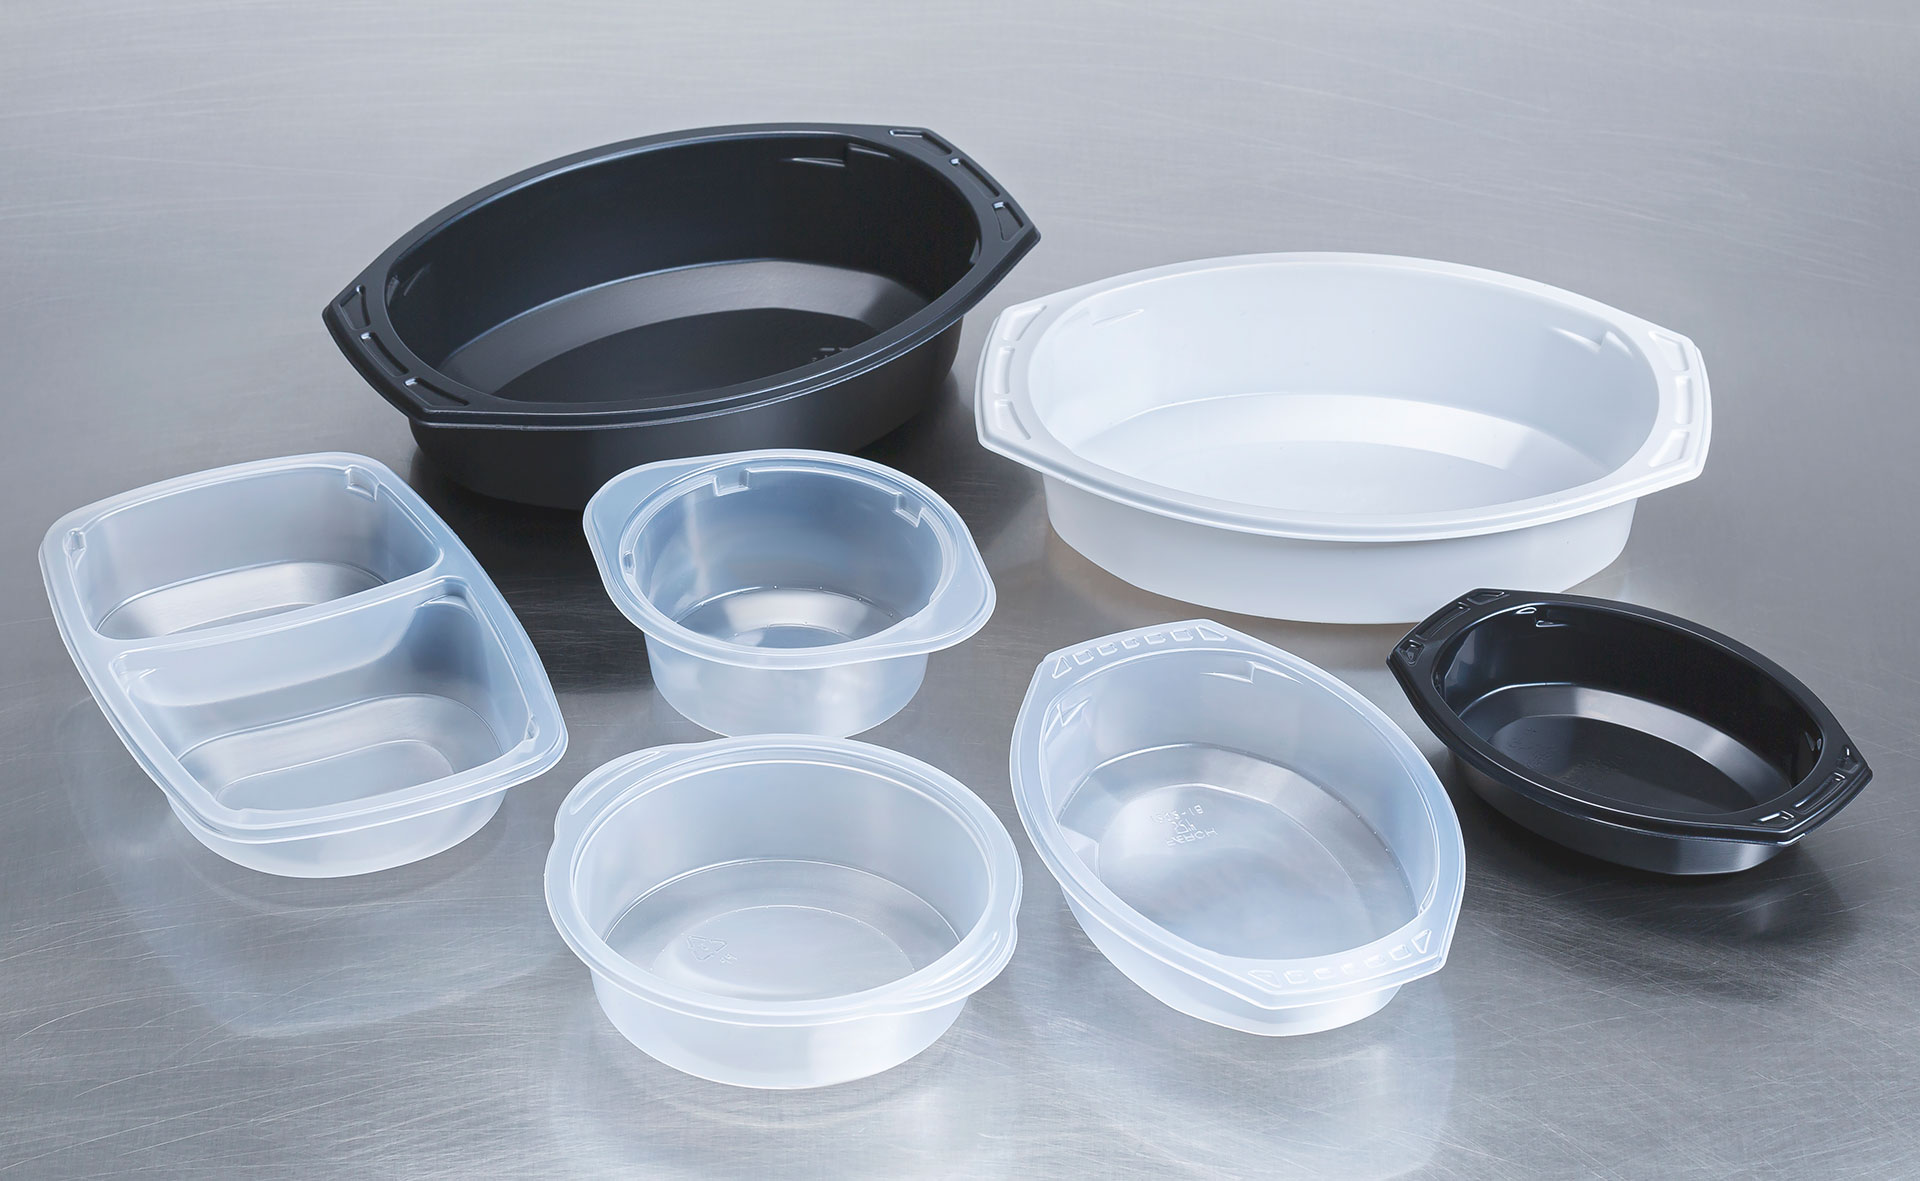 Micvac trays come in different variations, sizes and colours